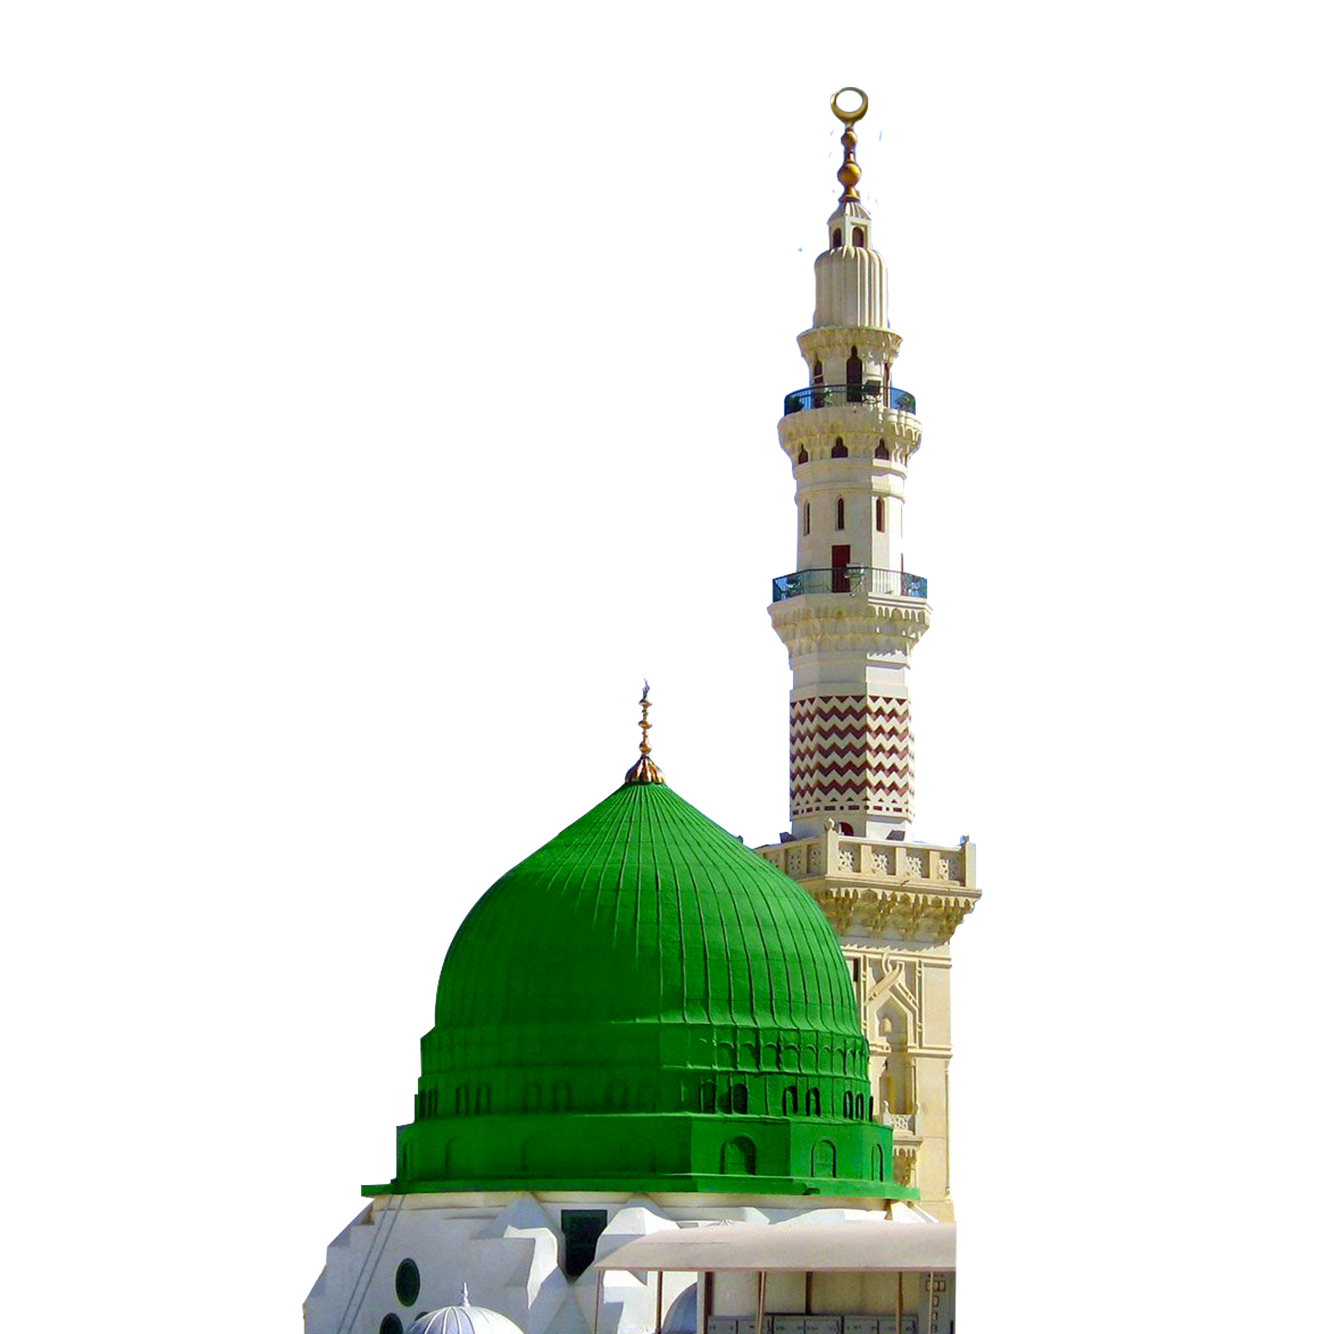 Free download high quality madina png transparent image